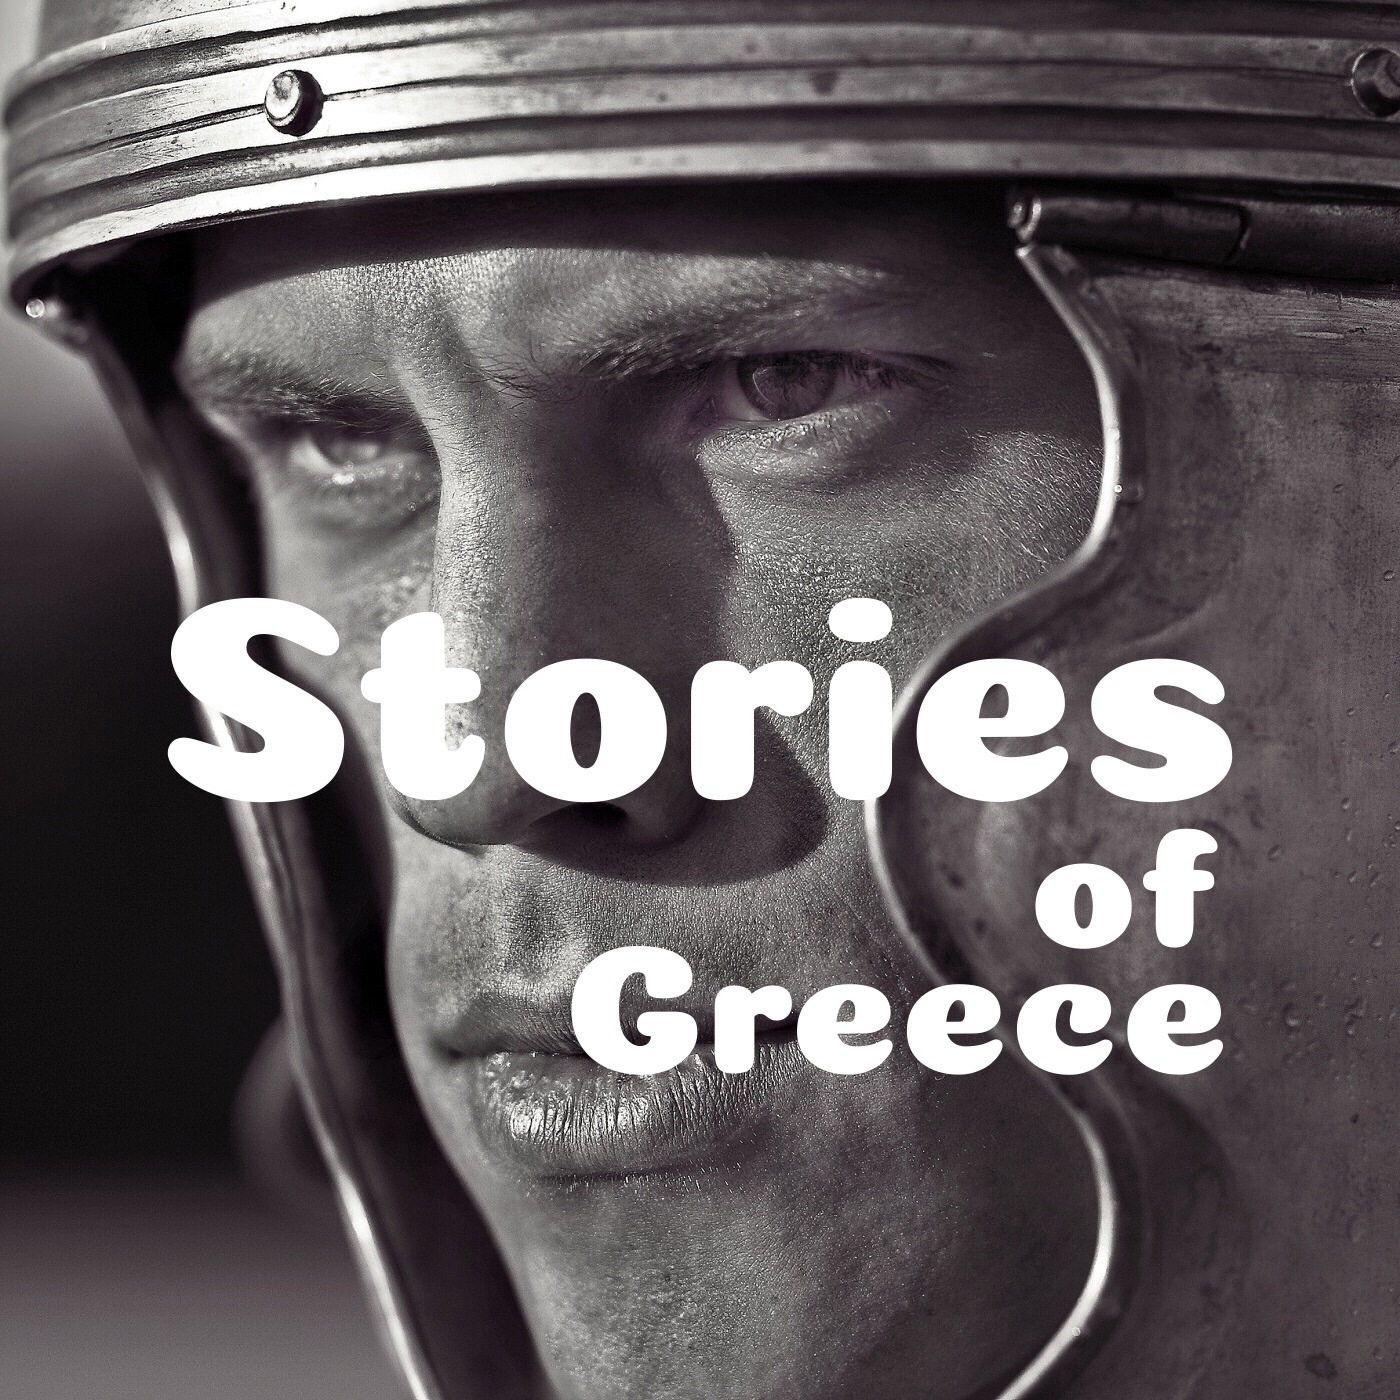 Stories of Greece Ep. 2 - Hercules, Vol. I